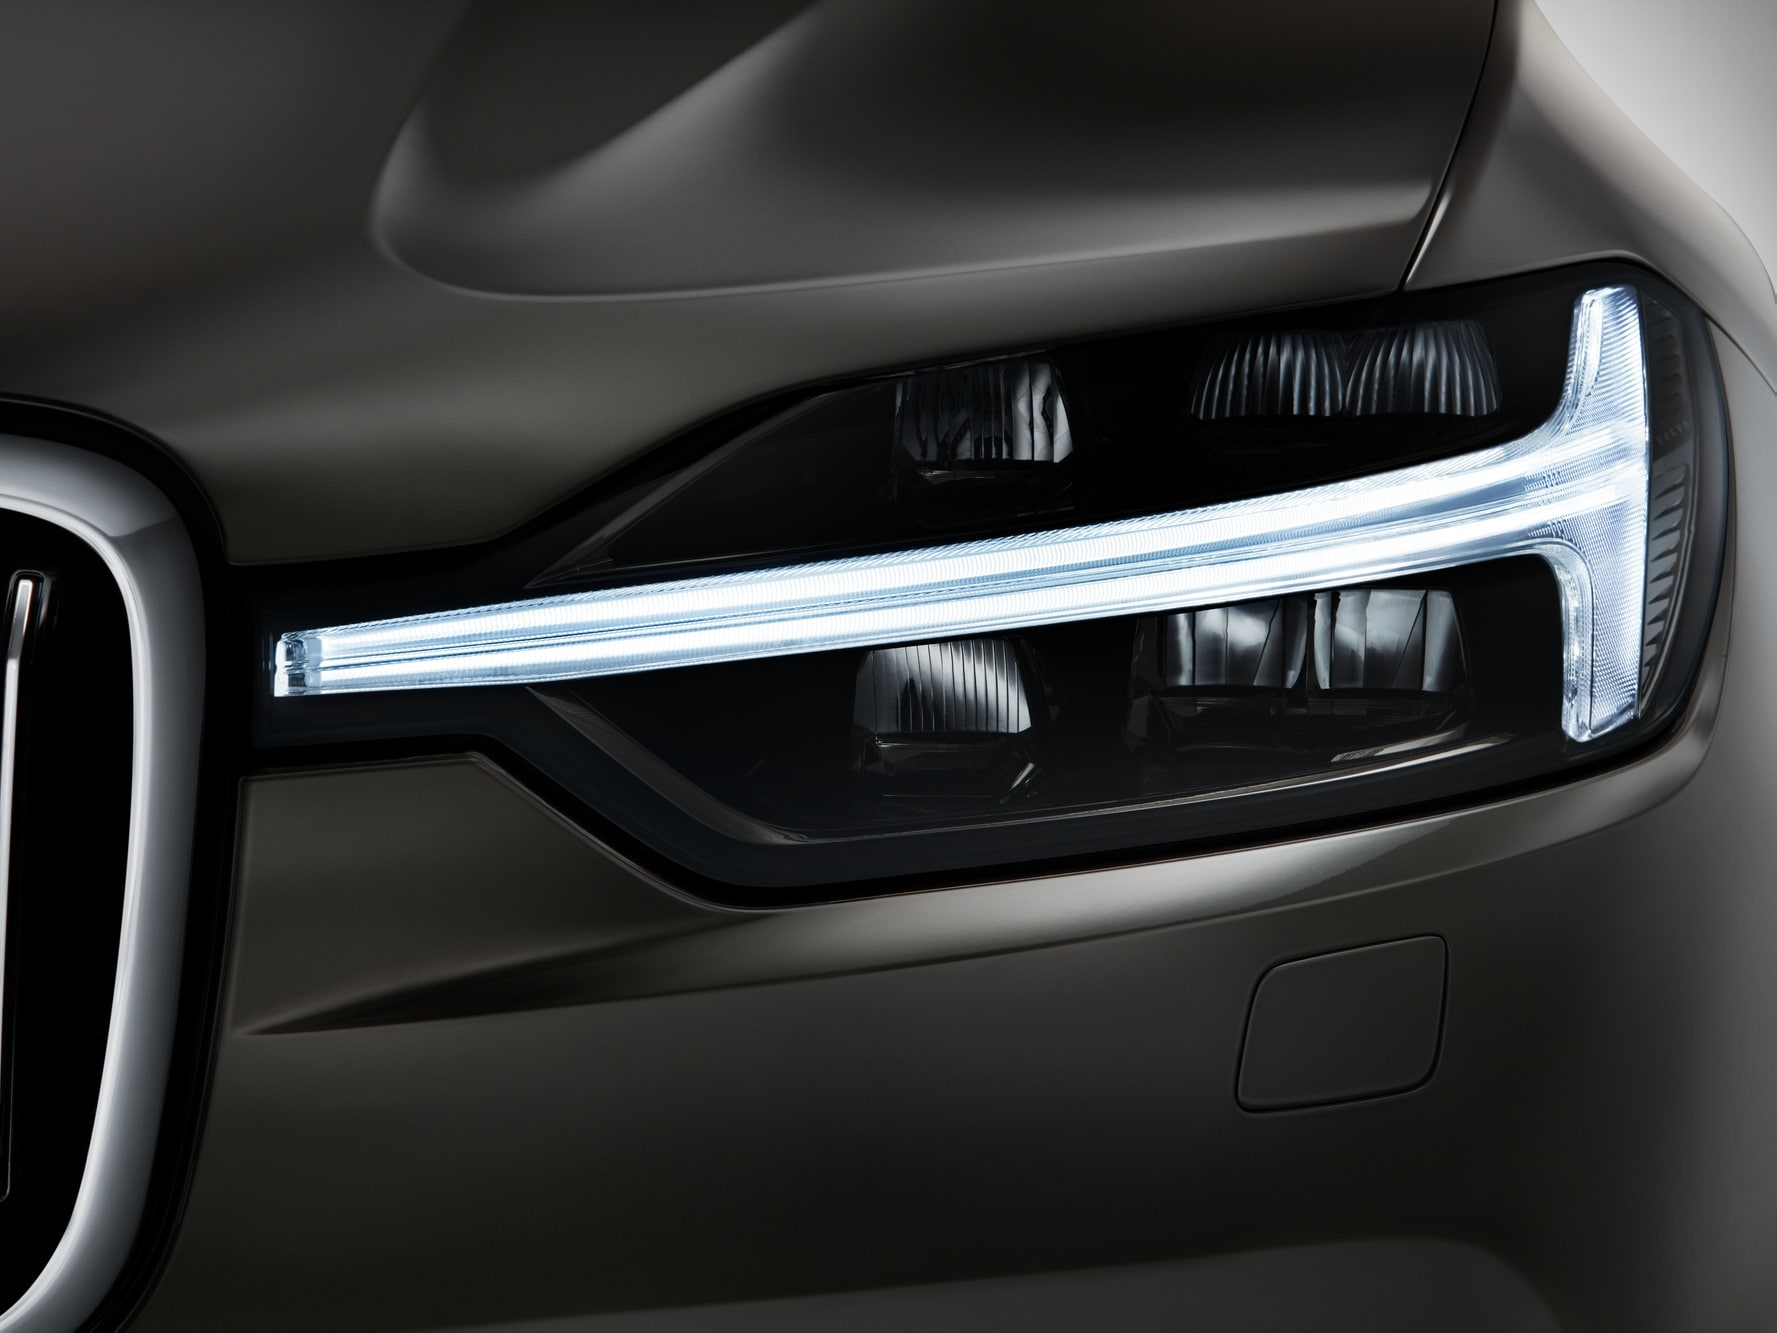 Front view of headlight lamp of Volvo XC60